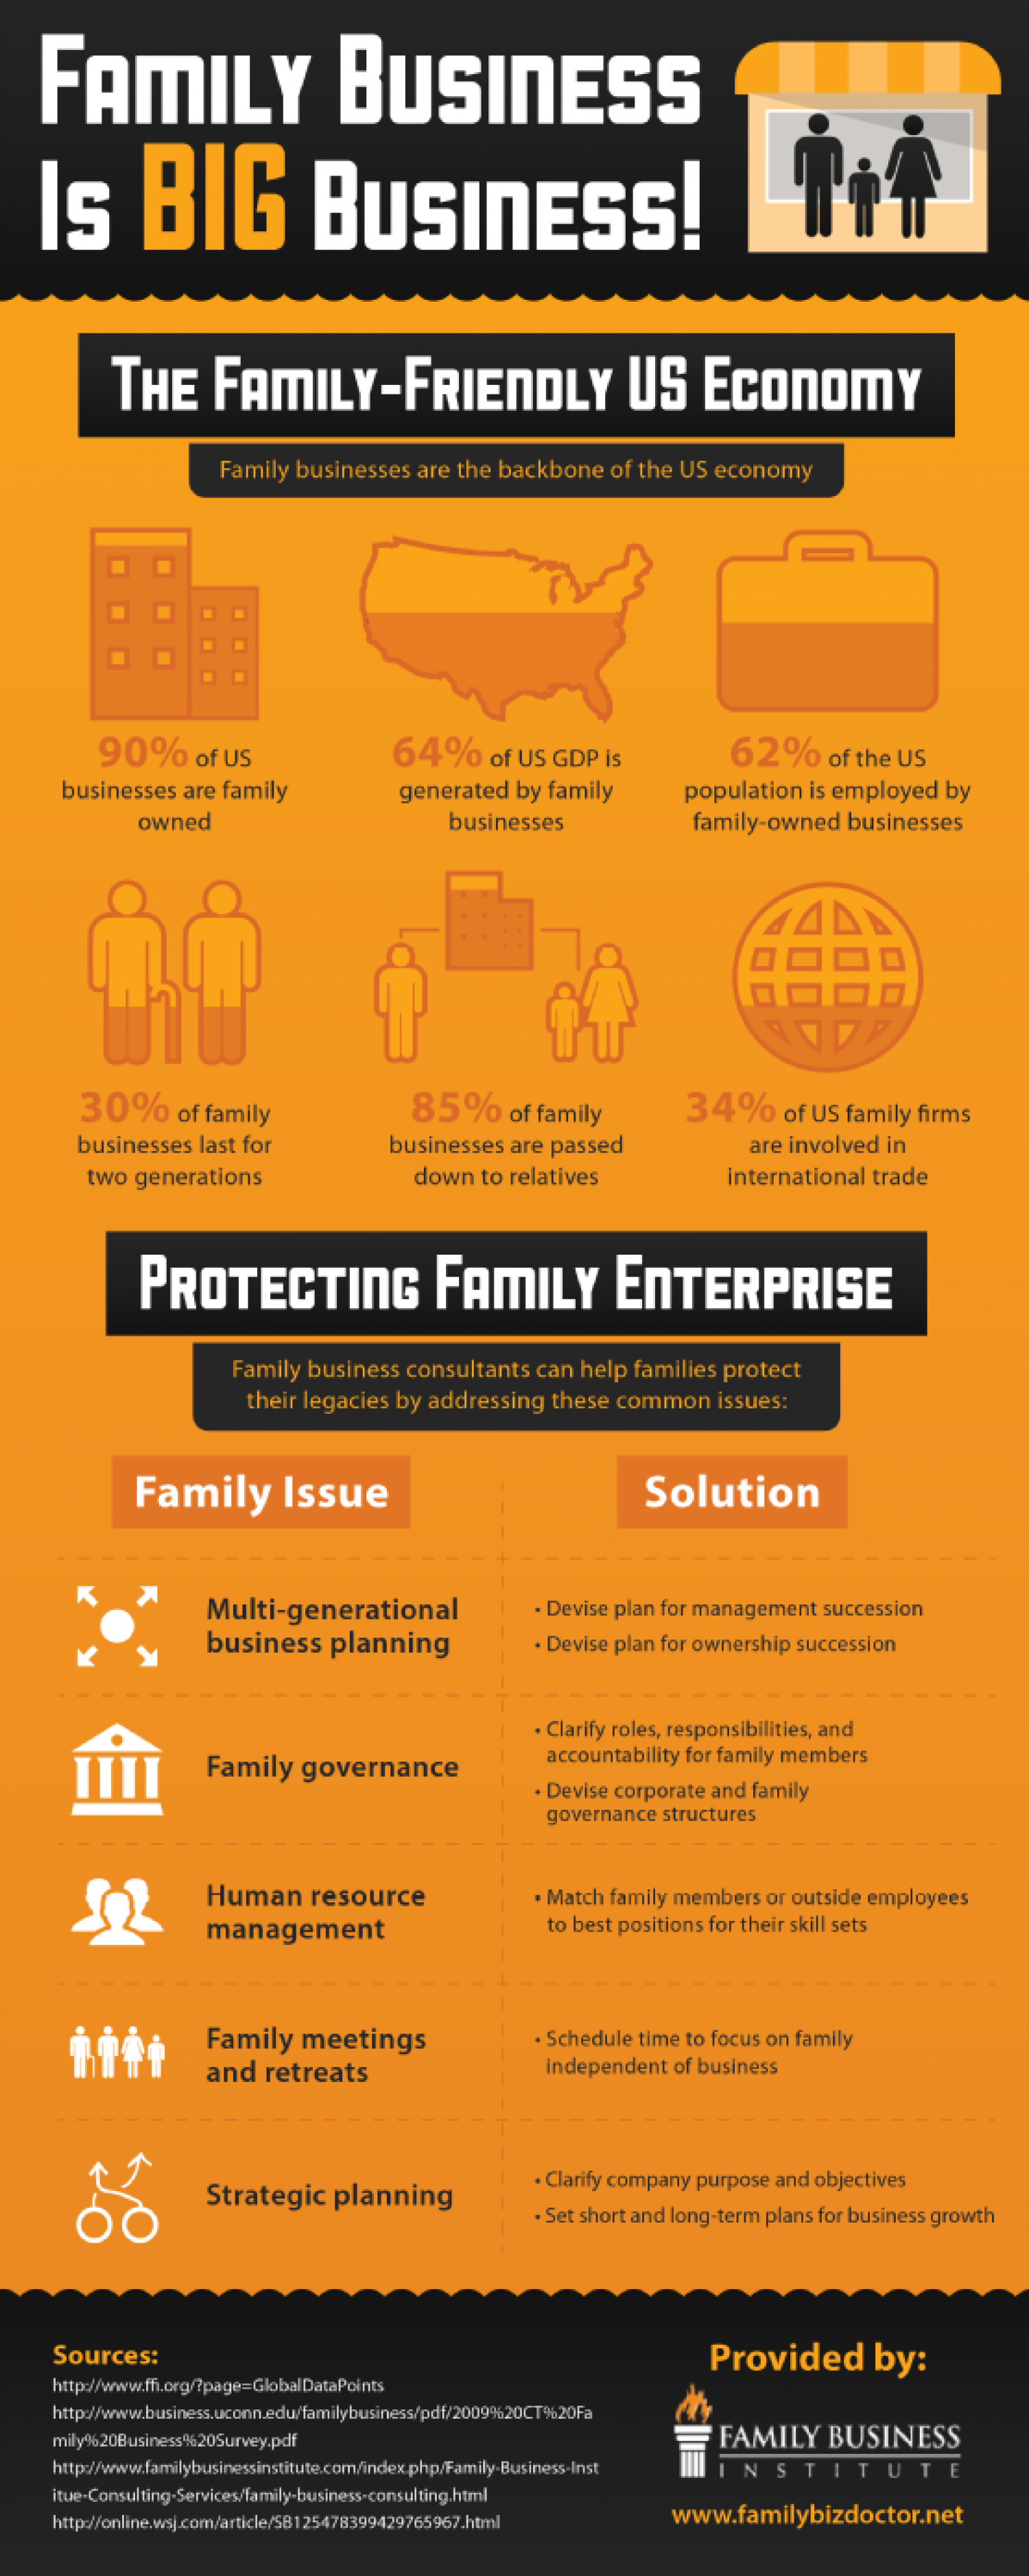 Family Business Is Big Business! Infographic